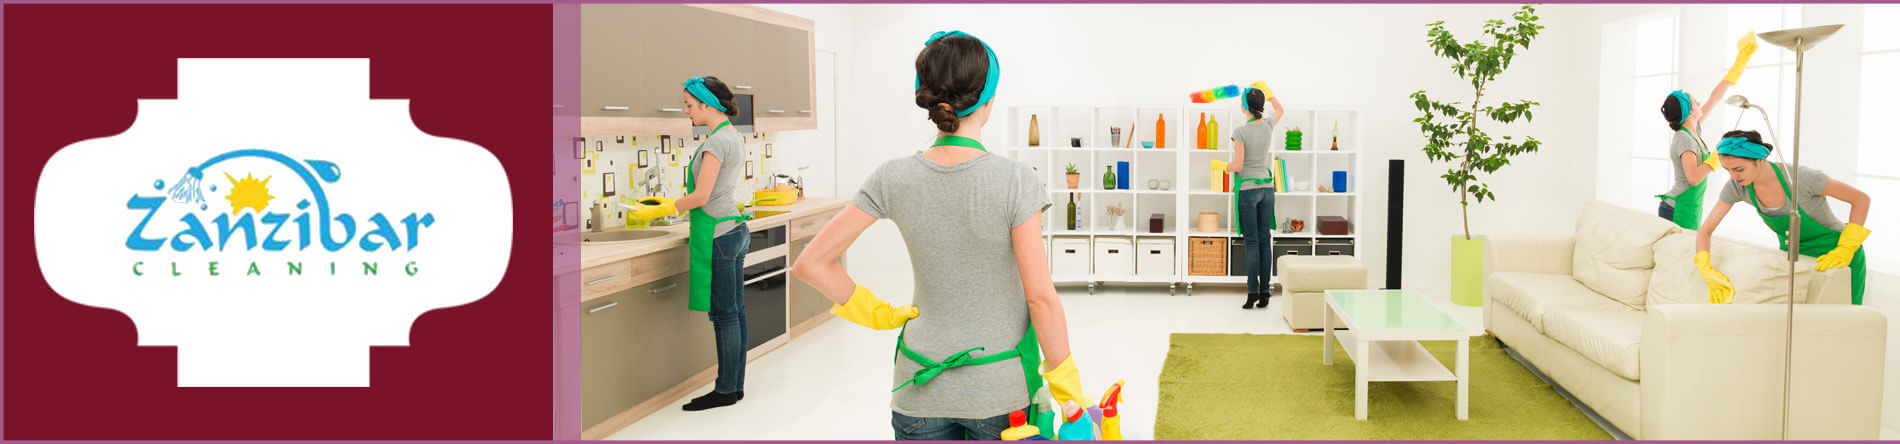 Zanzibar Cleaning Offers an House Cleaning Service in Lawrenceville, GA